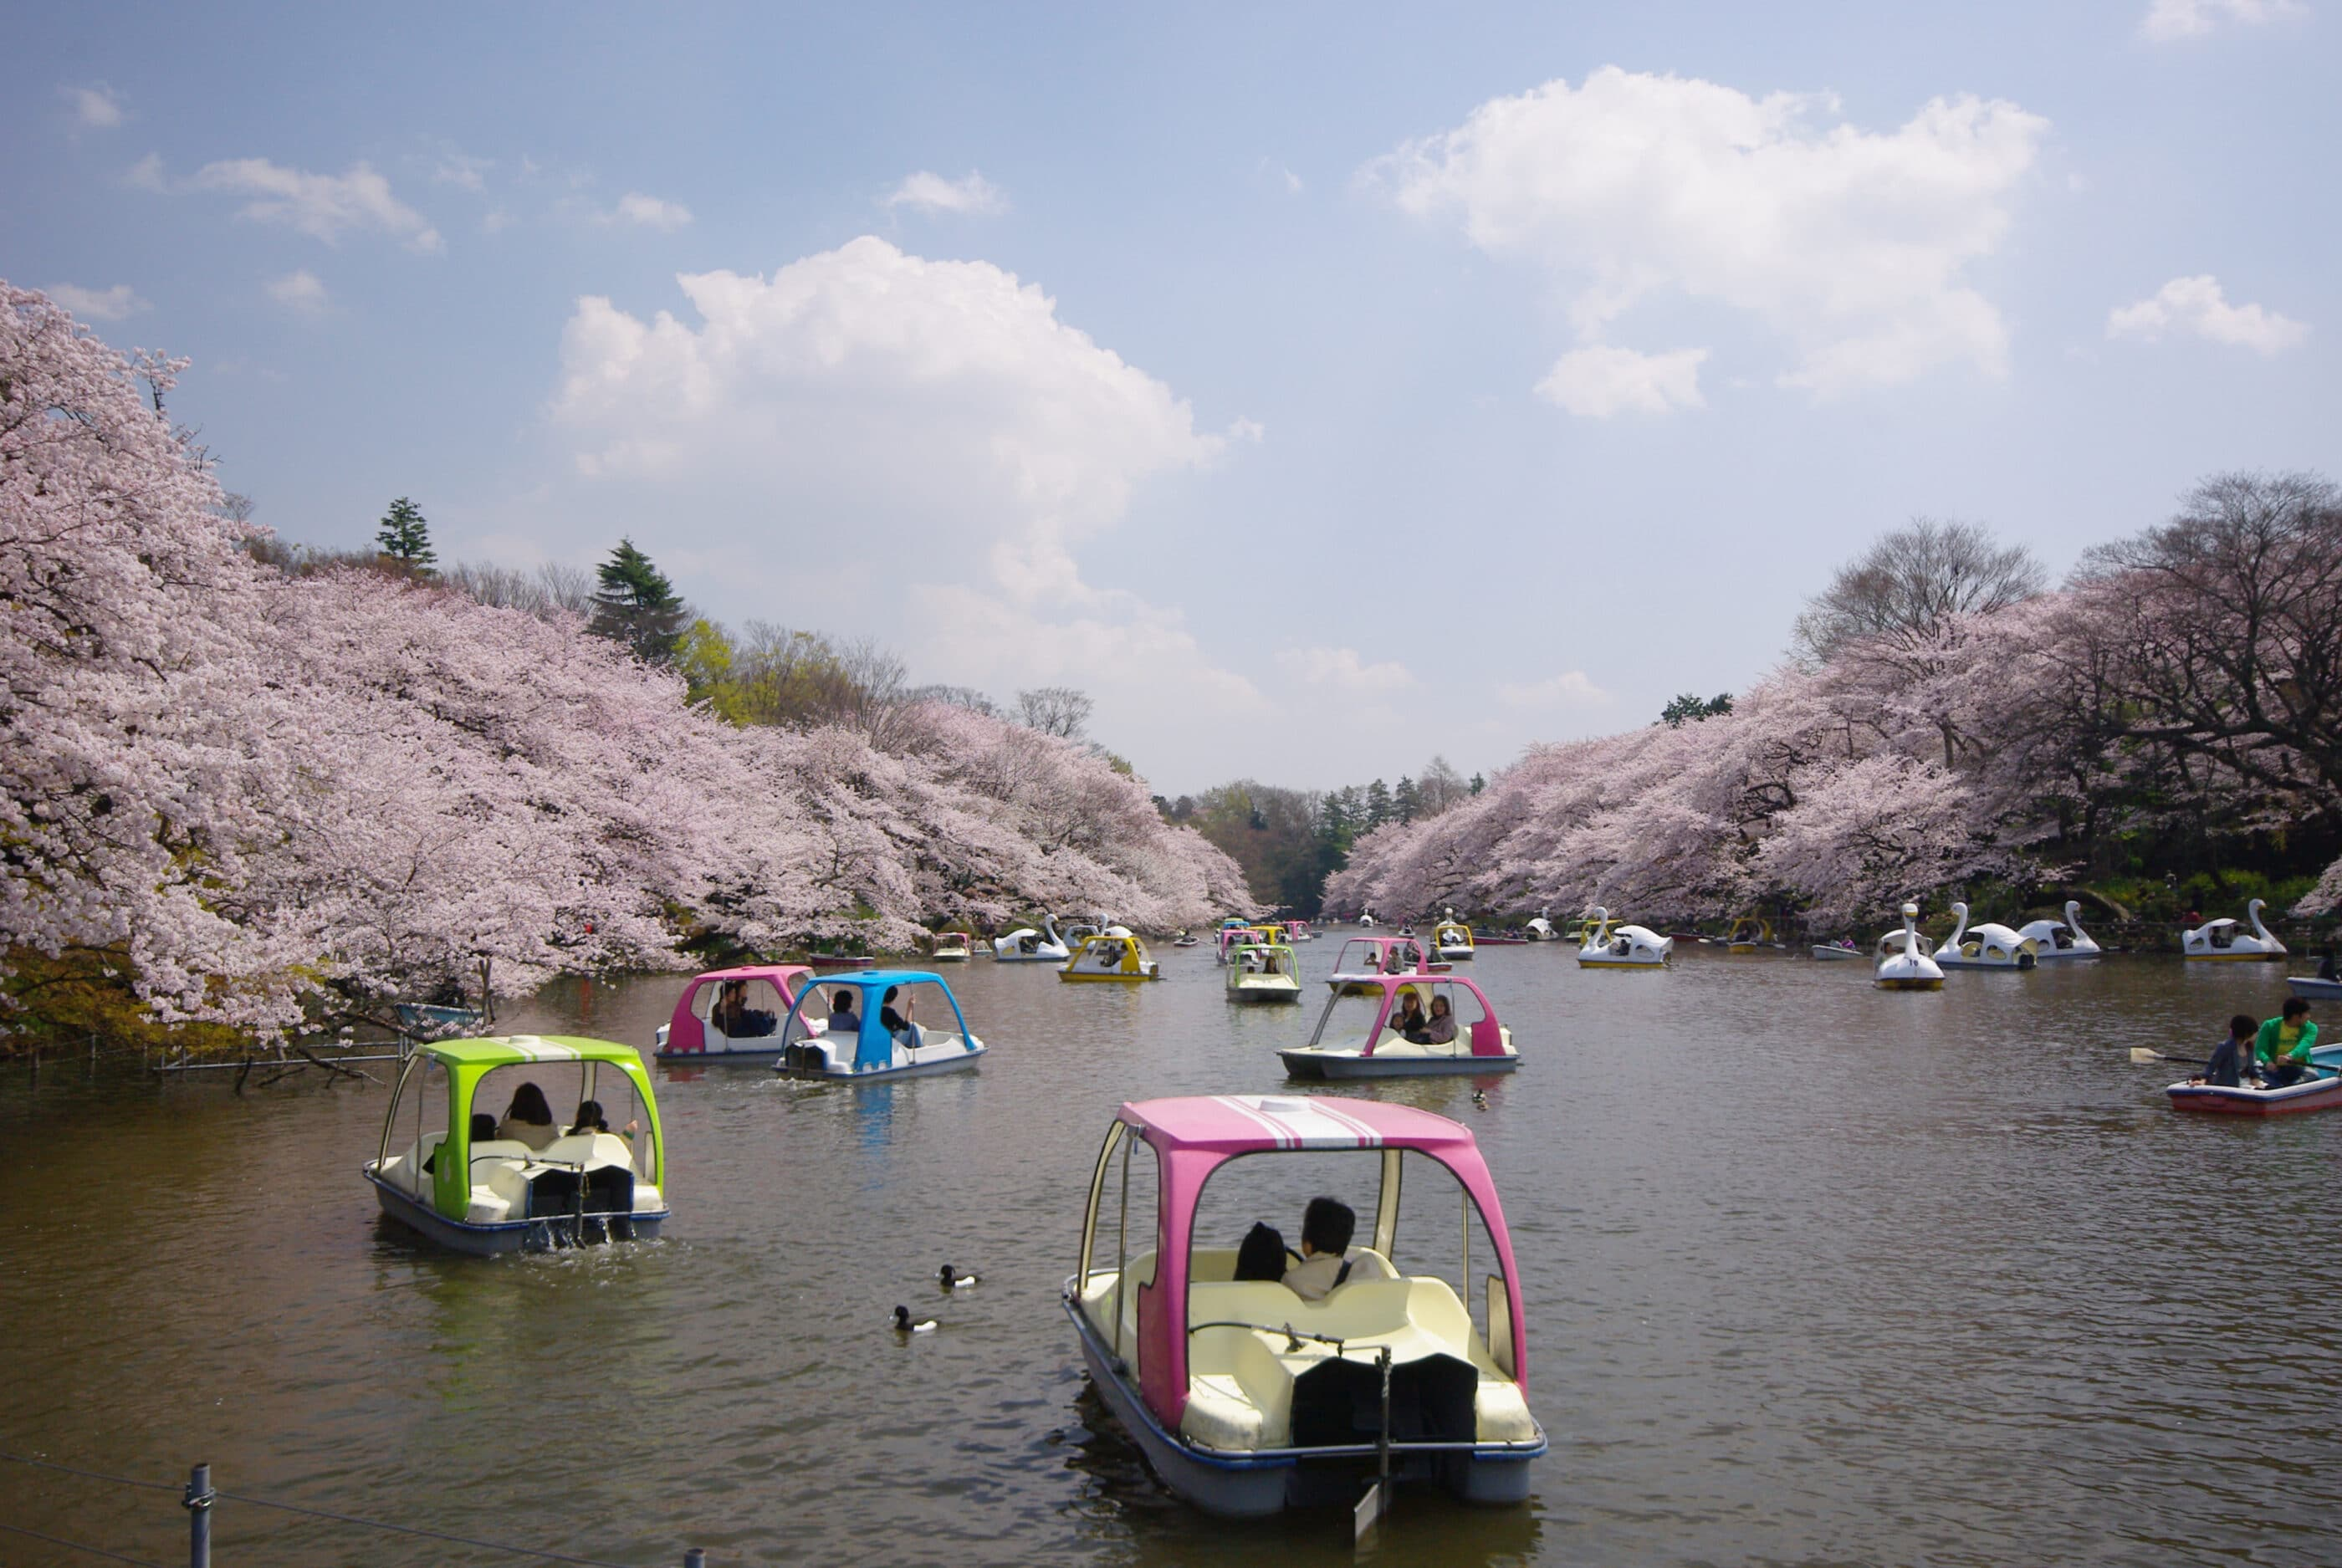 Pedal and swan boats on the lake during cherry blossom season in Inokashira Park, Tokyo.